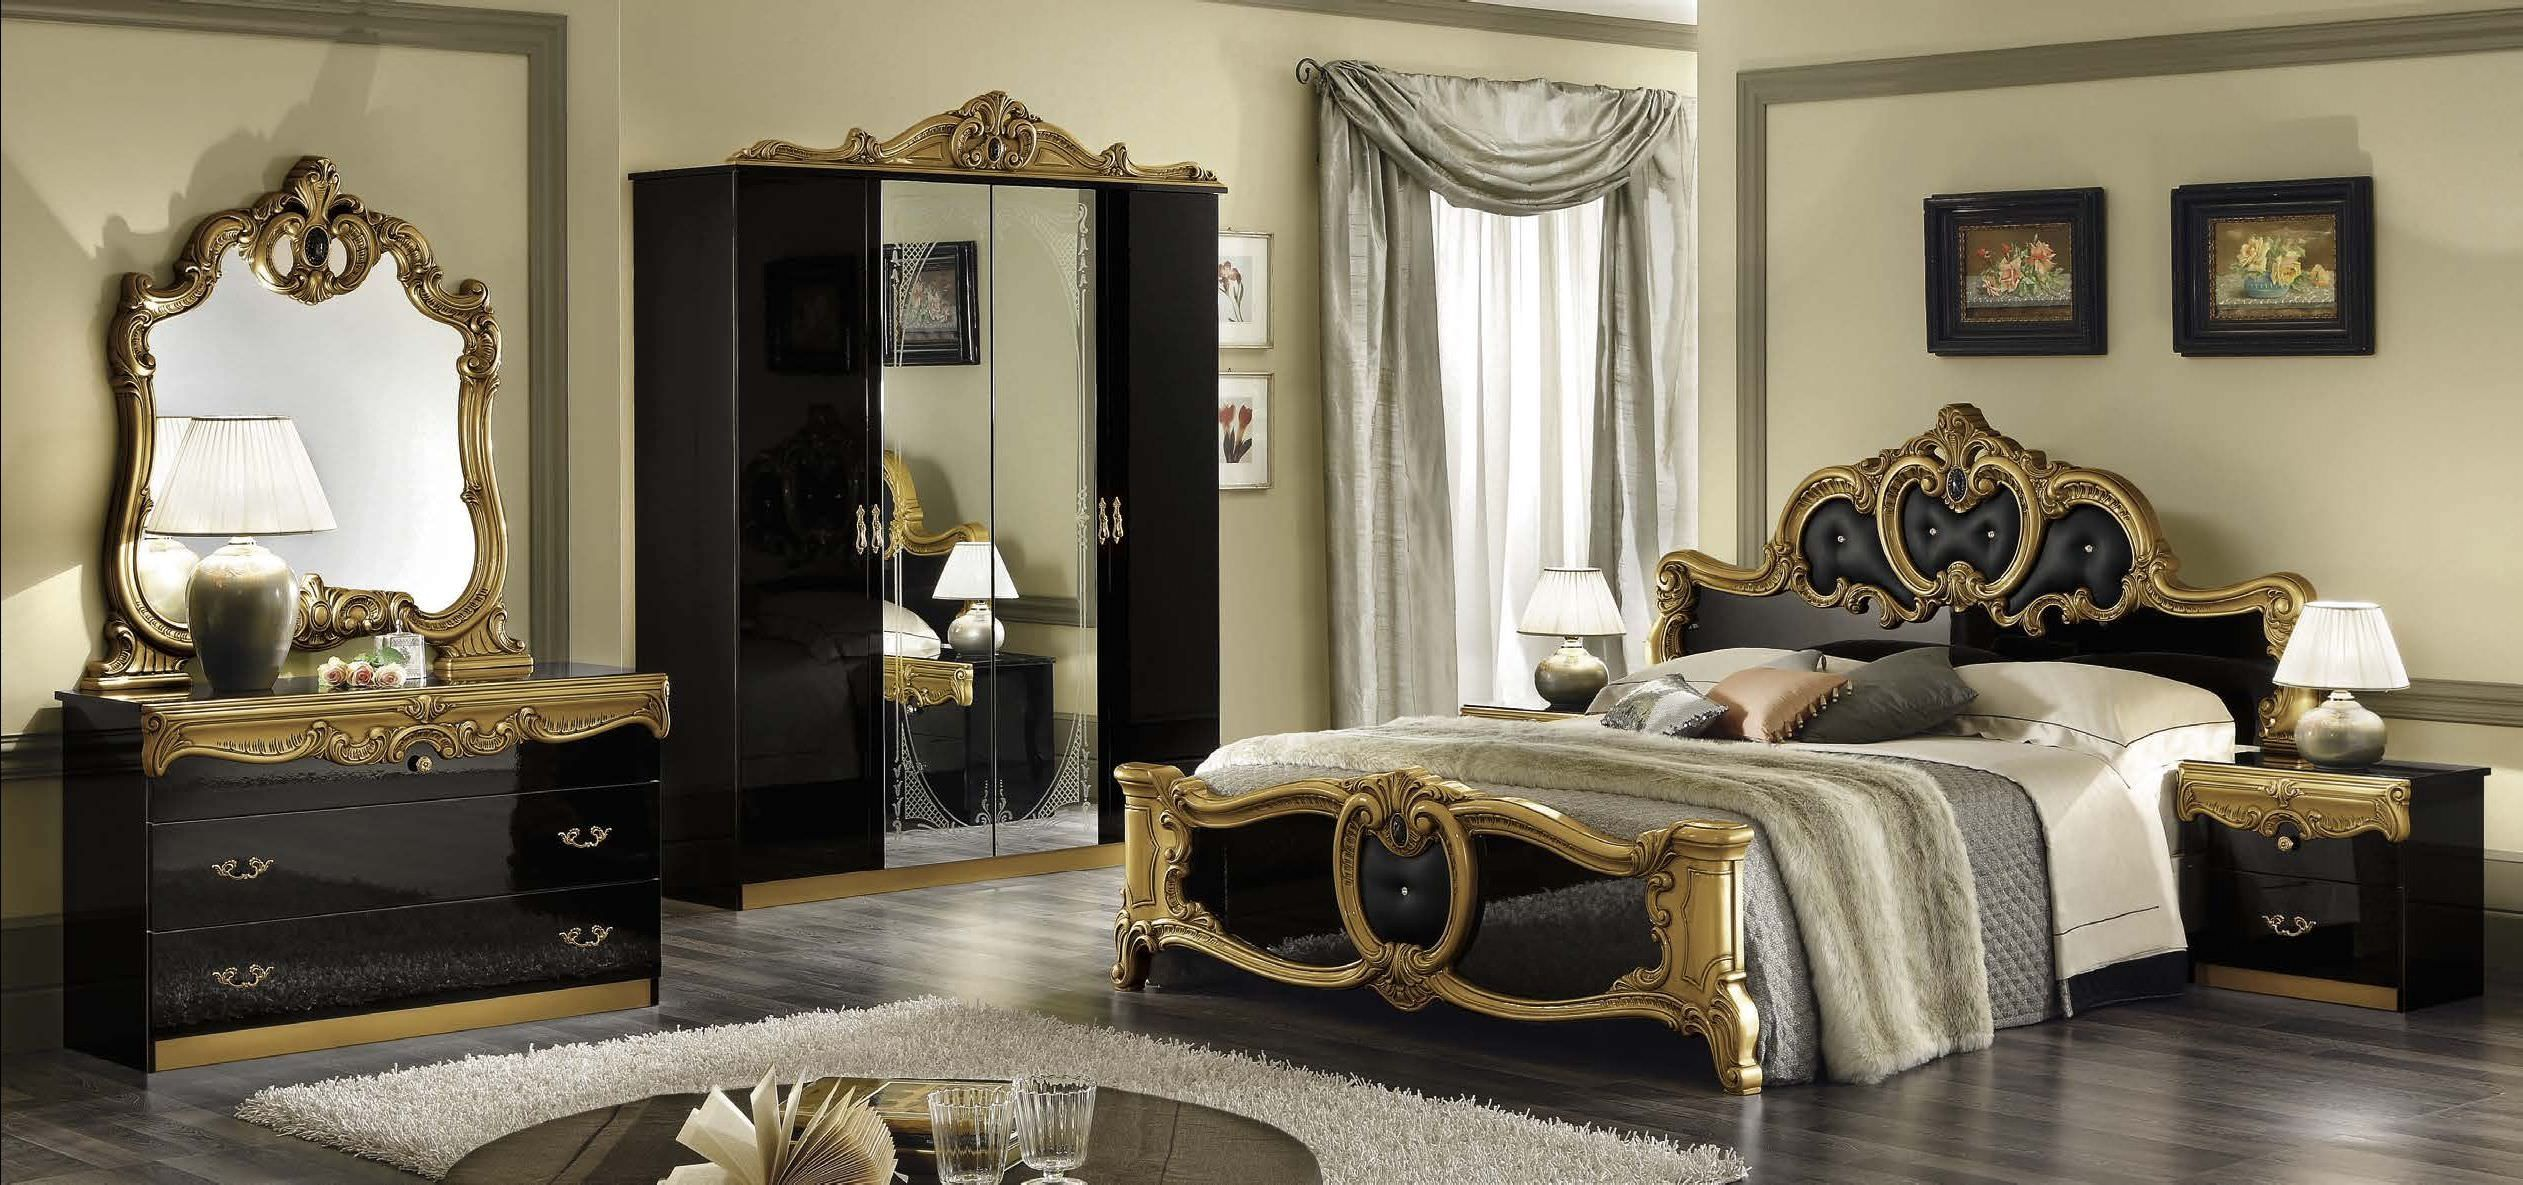 Black Gold Clic Style Bedroom For A Royal Ambient Feel Inspired Www Luu Luxurydesign Interiordesign Lighting